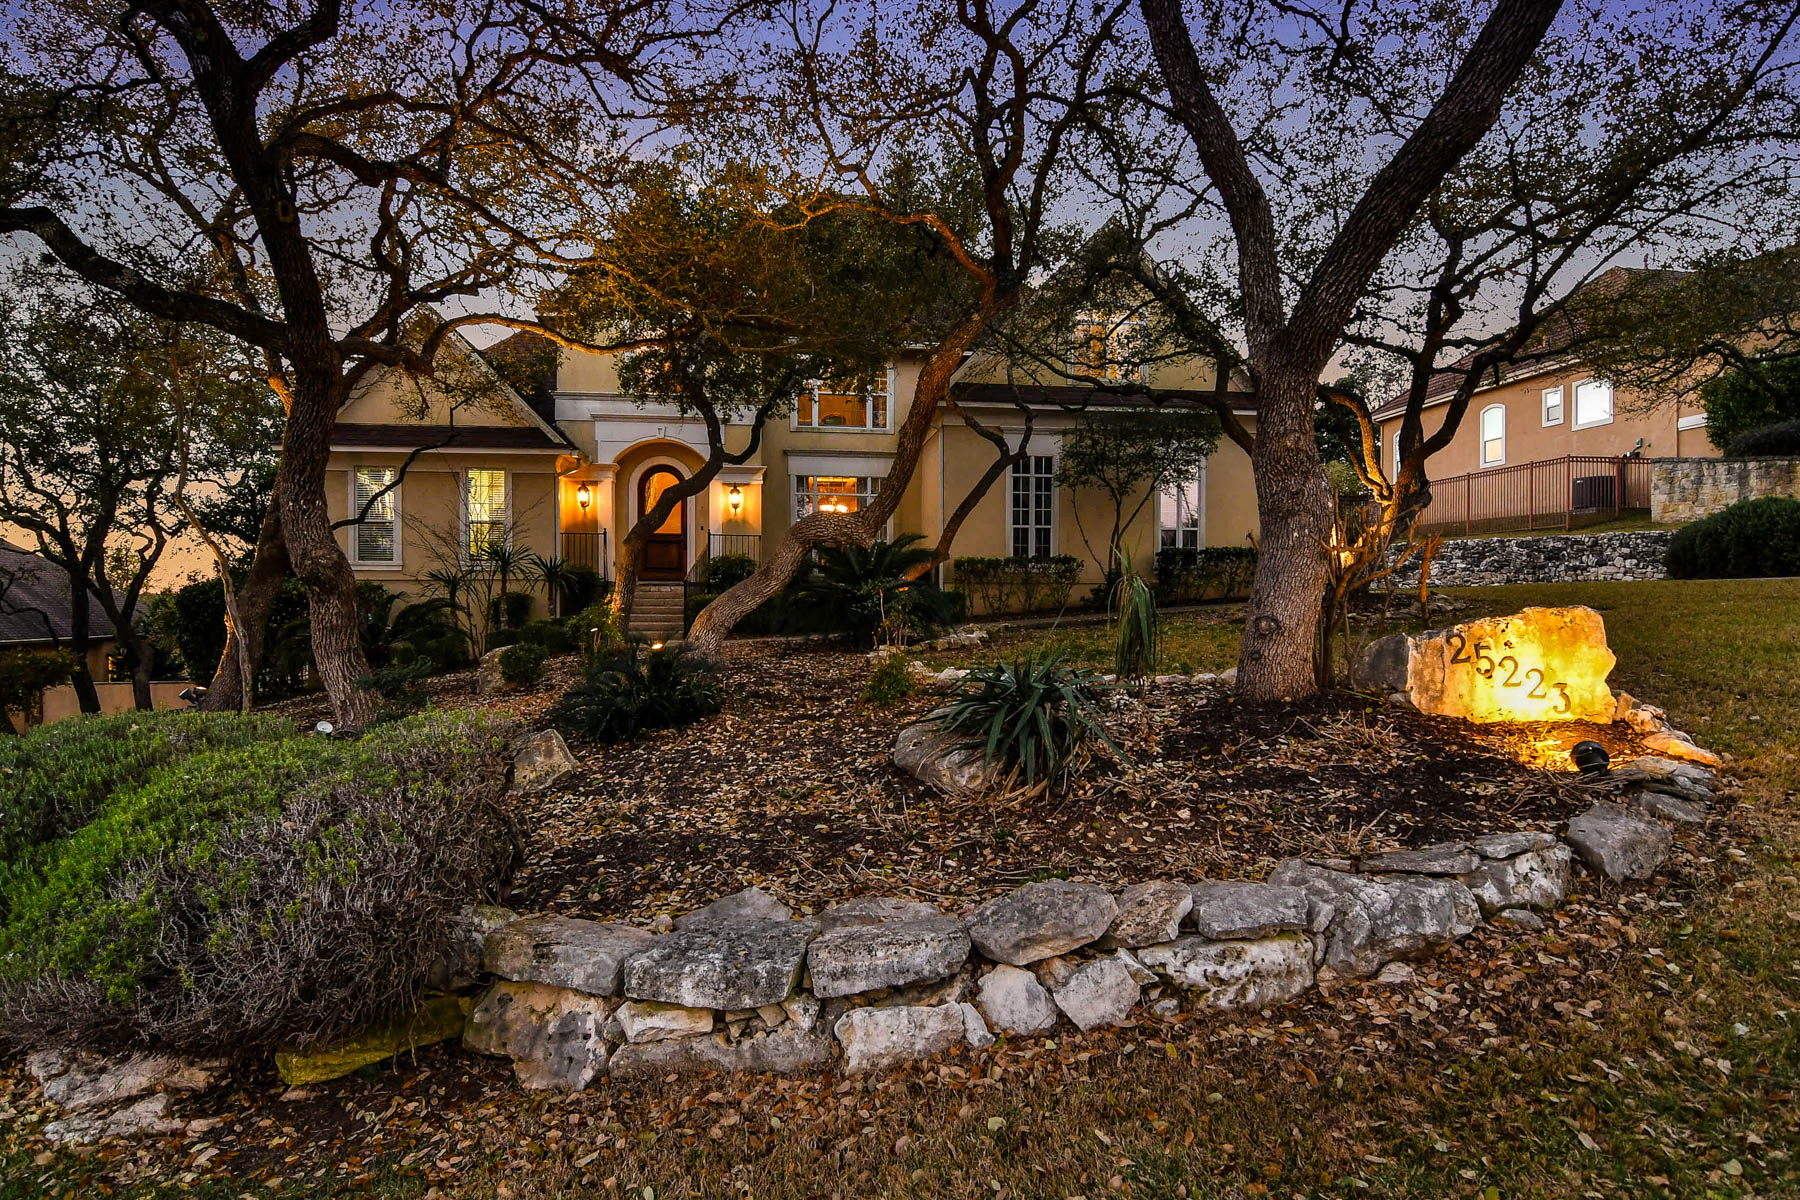 Single Family Home for Sale at Impeccable Quality and Style in Summerglen 25223 Doral Crest Summerglen, San Antonio, Texas, 78260 United States